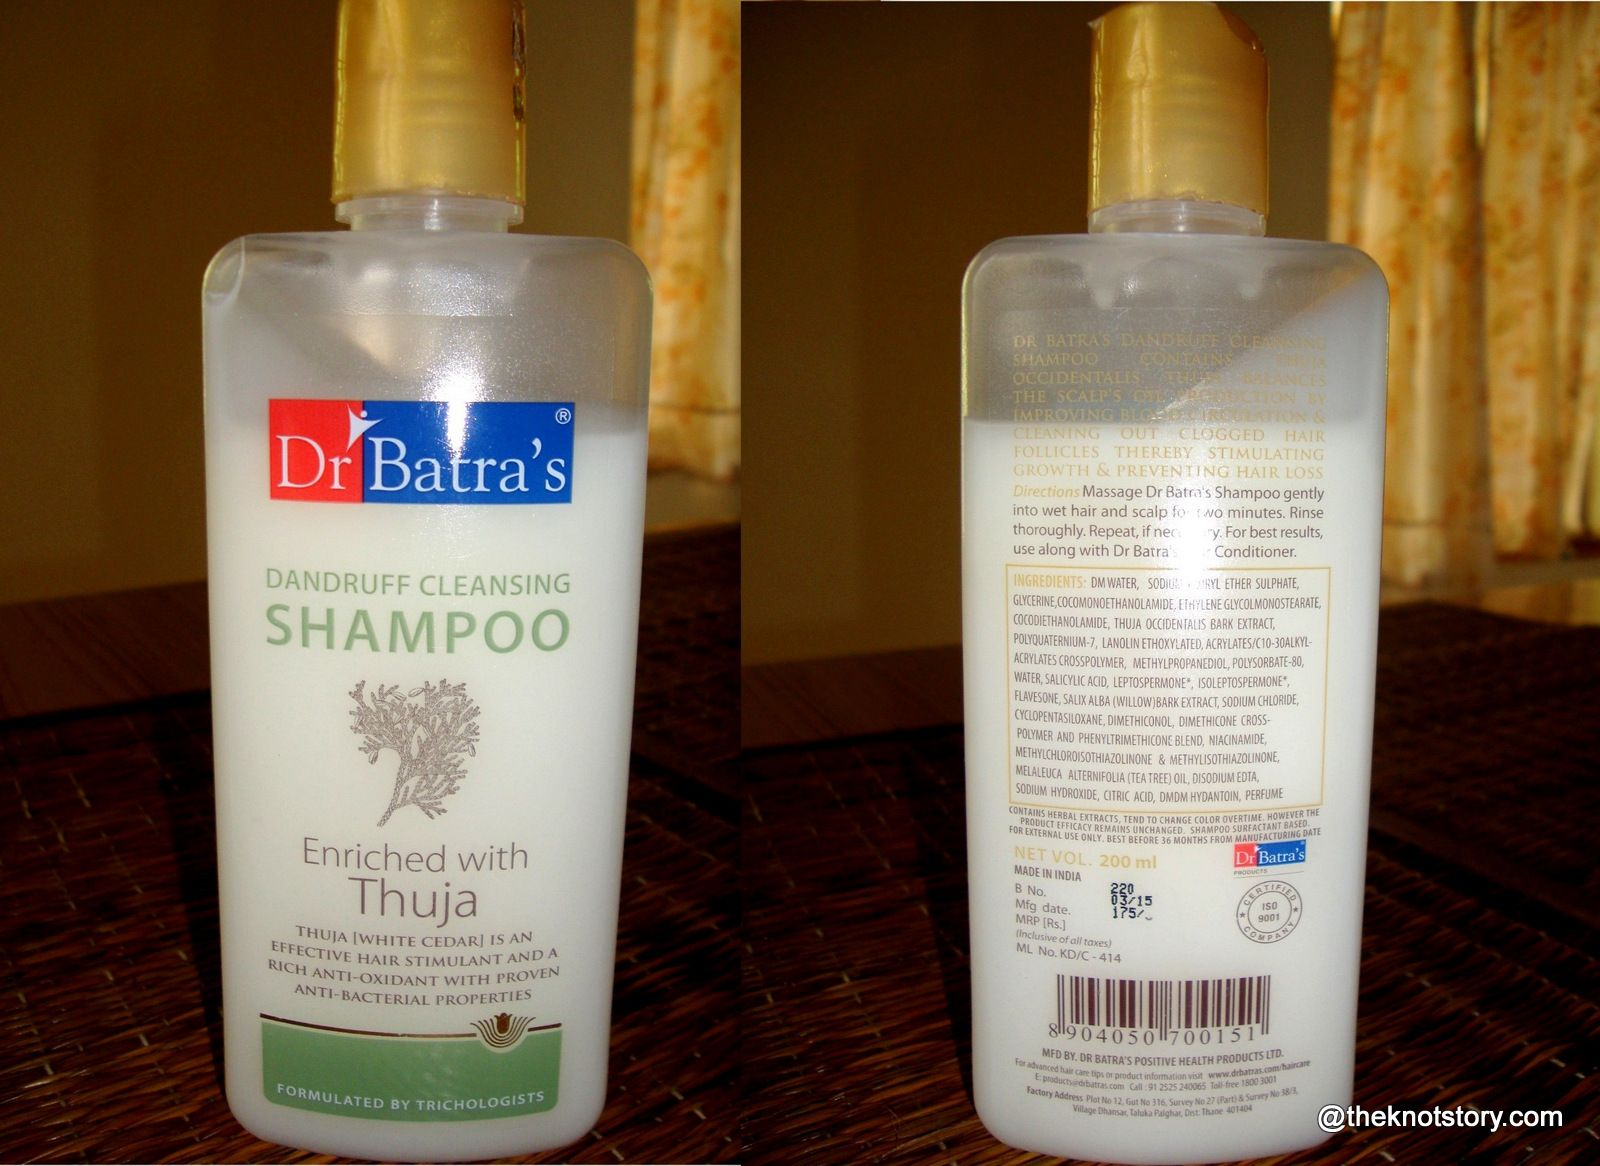 Wornout With Dandruff Try This Product Check Our Reviews On Https Oneclickreview Com Dr Batra Shampoo Review Fr Shampoo Reviews Shampoo Shampoo Bottle